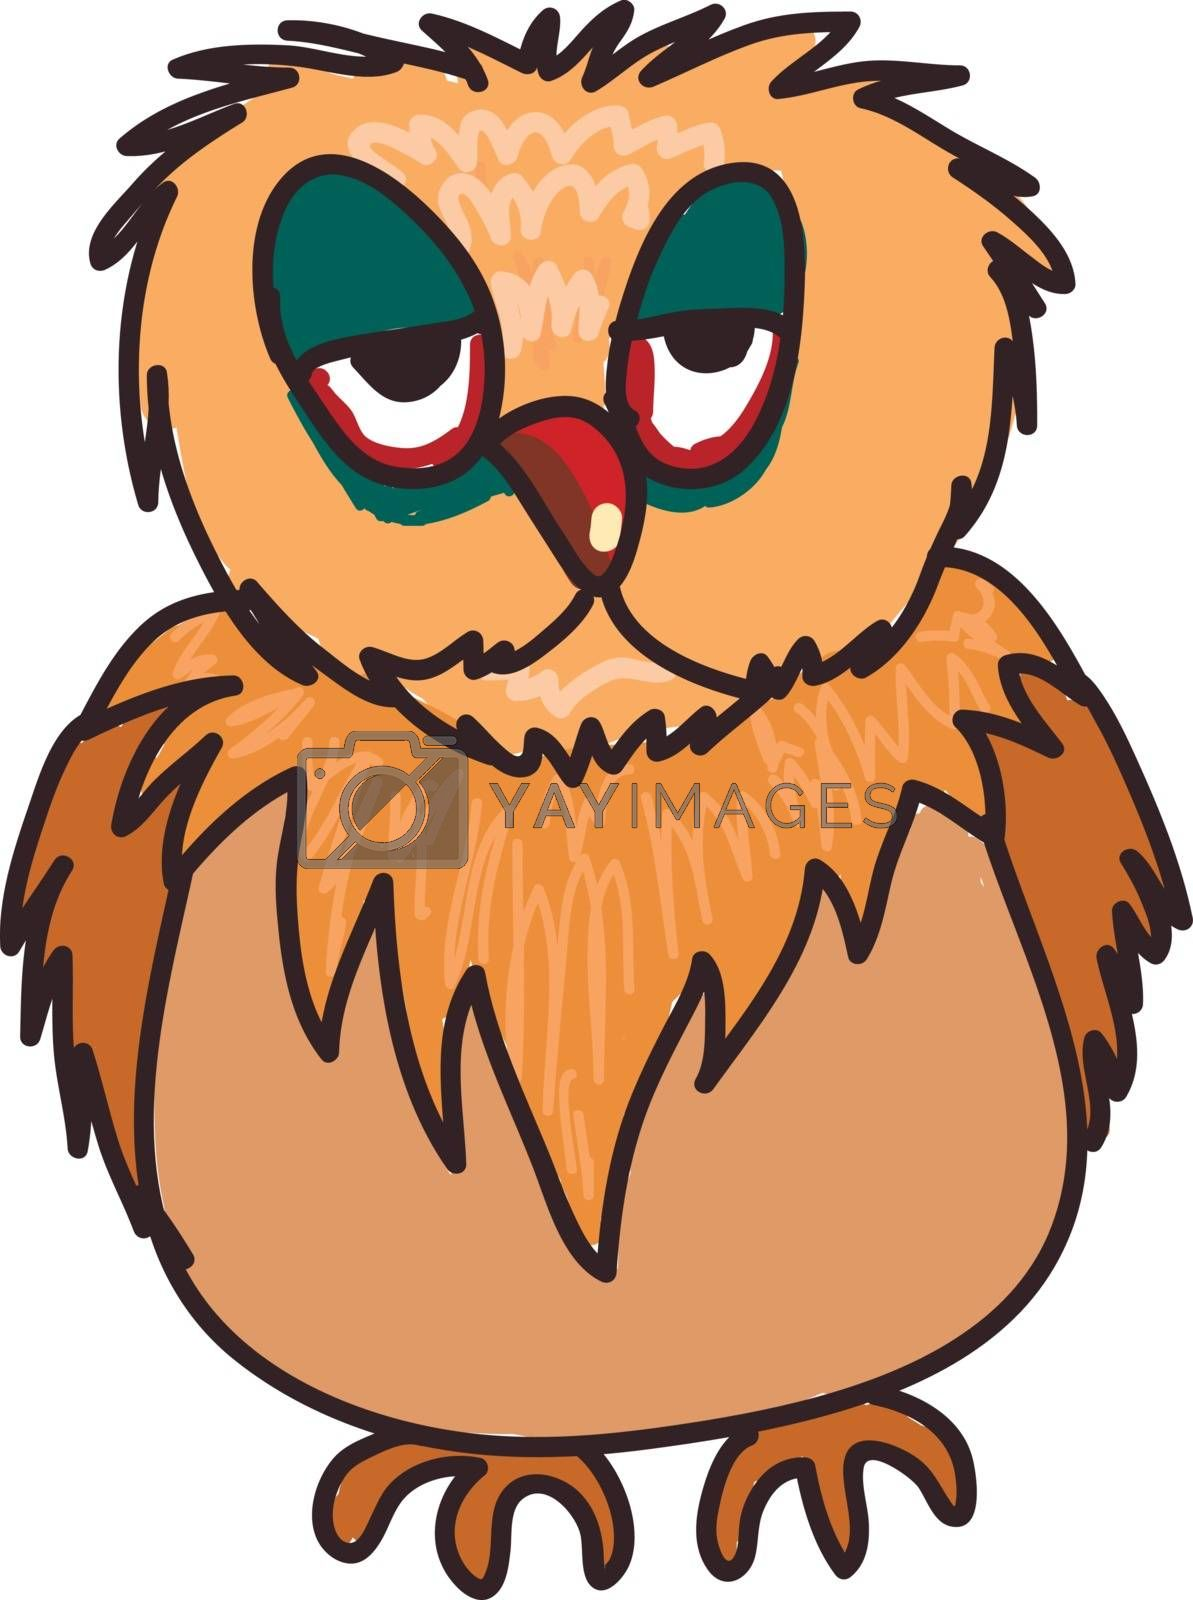 A sleep deprived brown owl vector color drawing or illustration